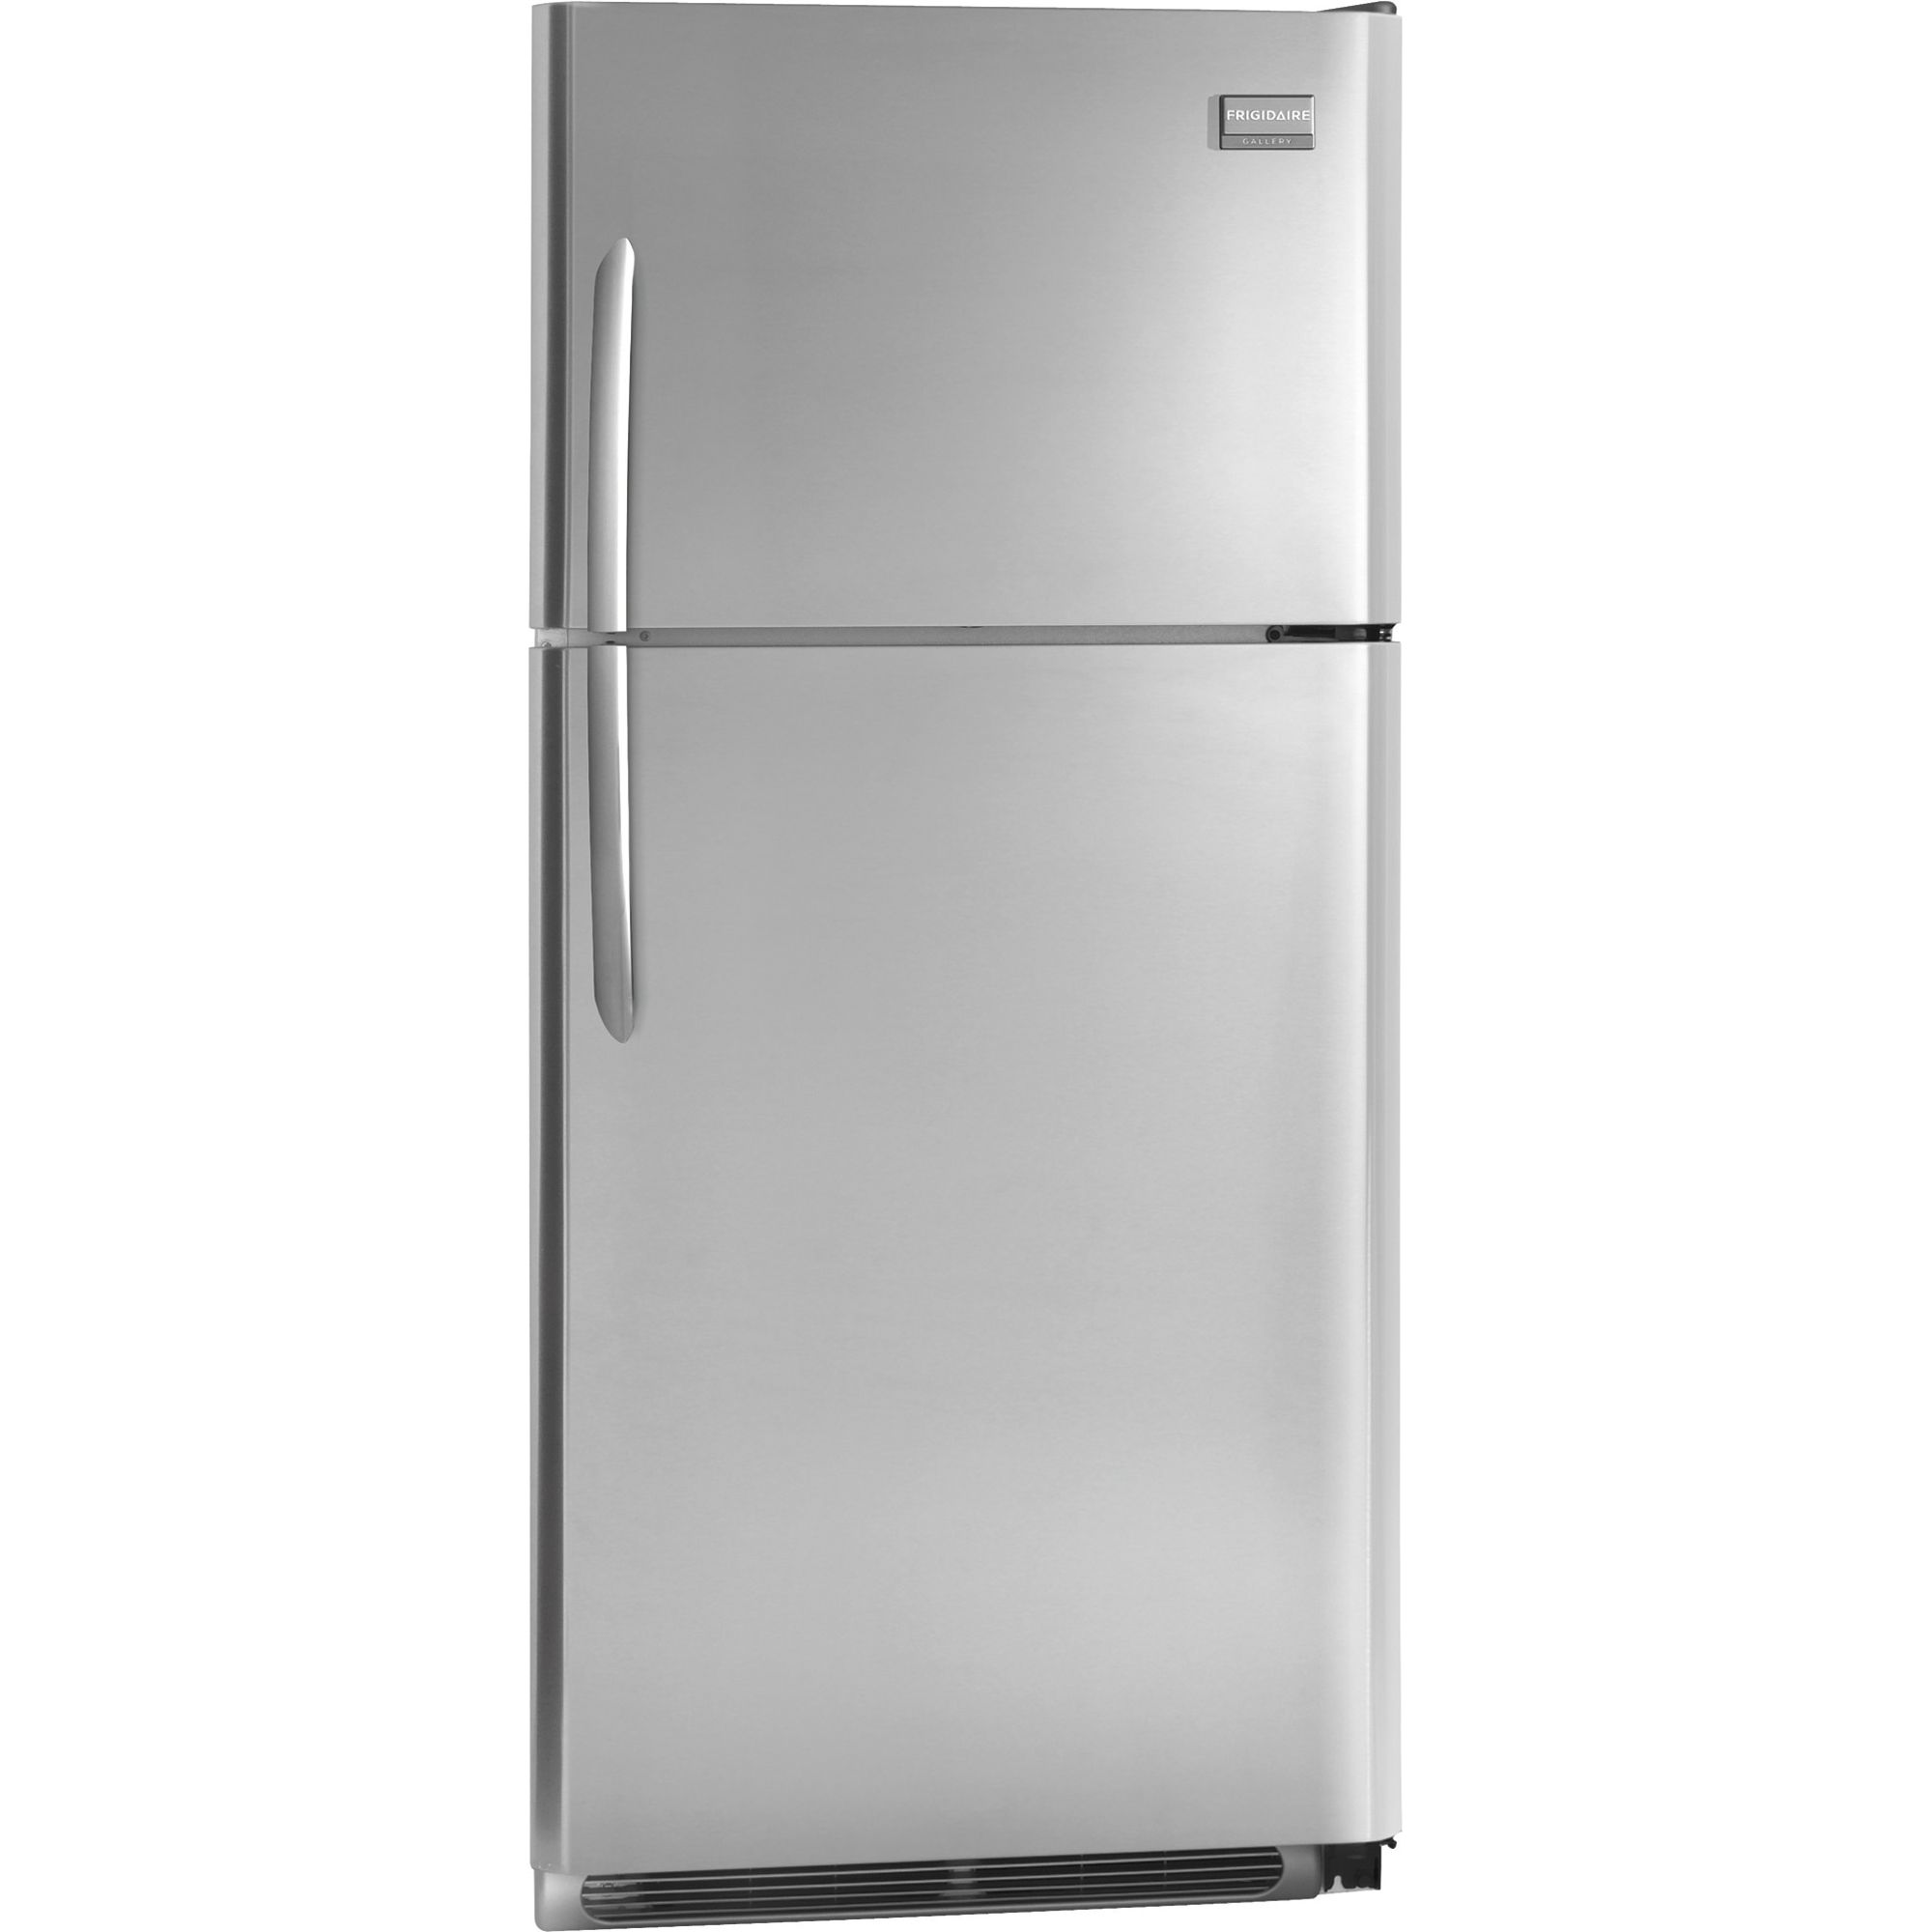 Kmart Freezer Frigidaire 18 2 Cu Ft Top Freezer Refrigerator